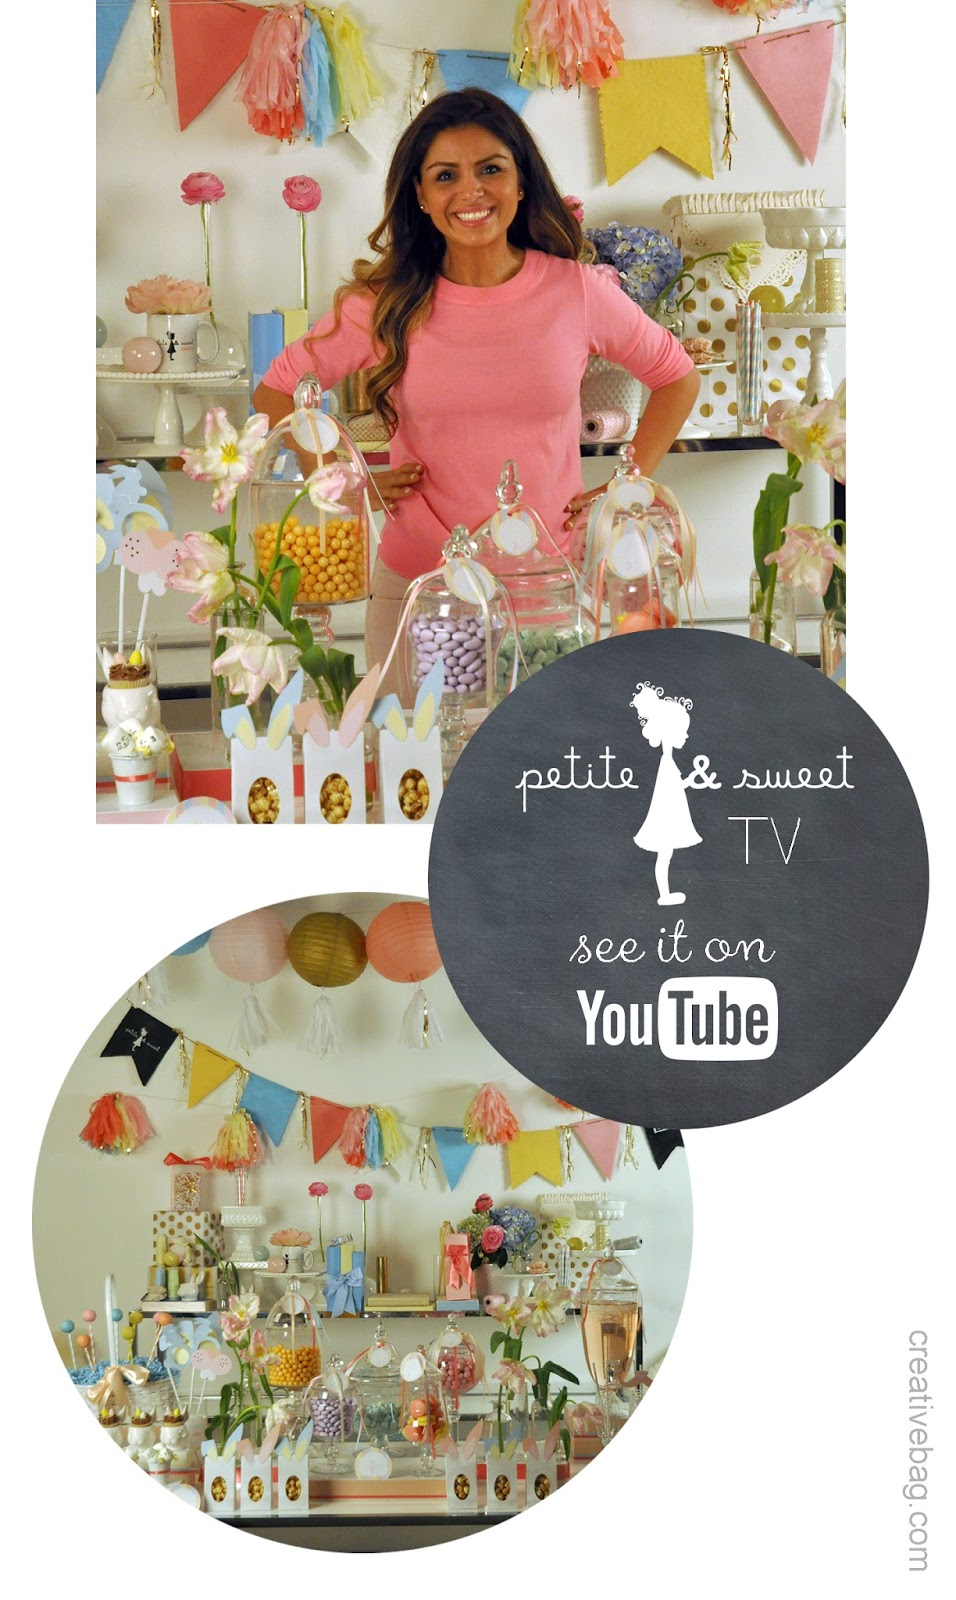 Easter sweet table diy as seen on YouTube | Petite & Sweet | Creative Bag (.com)